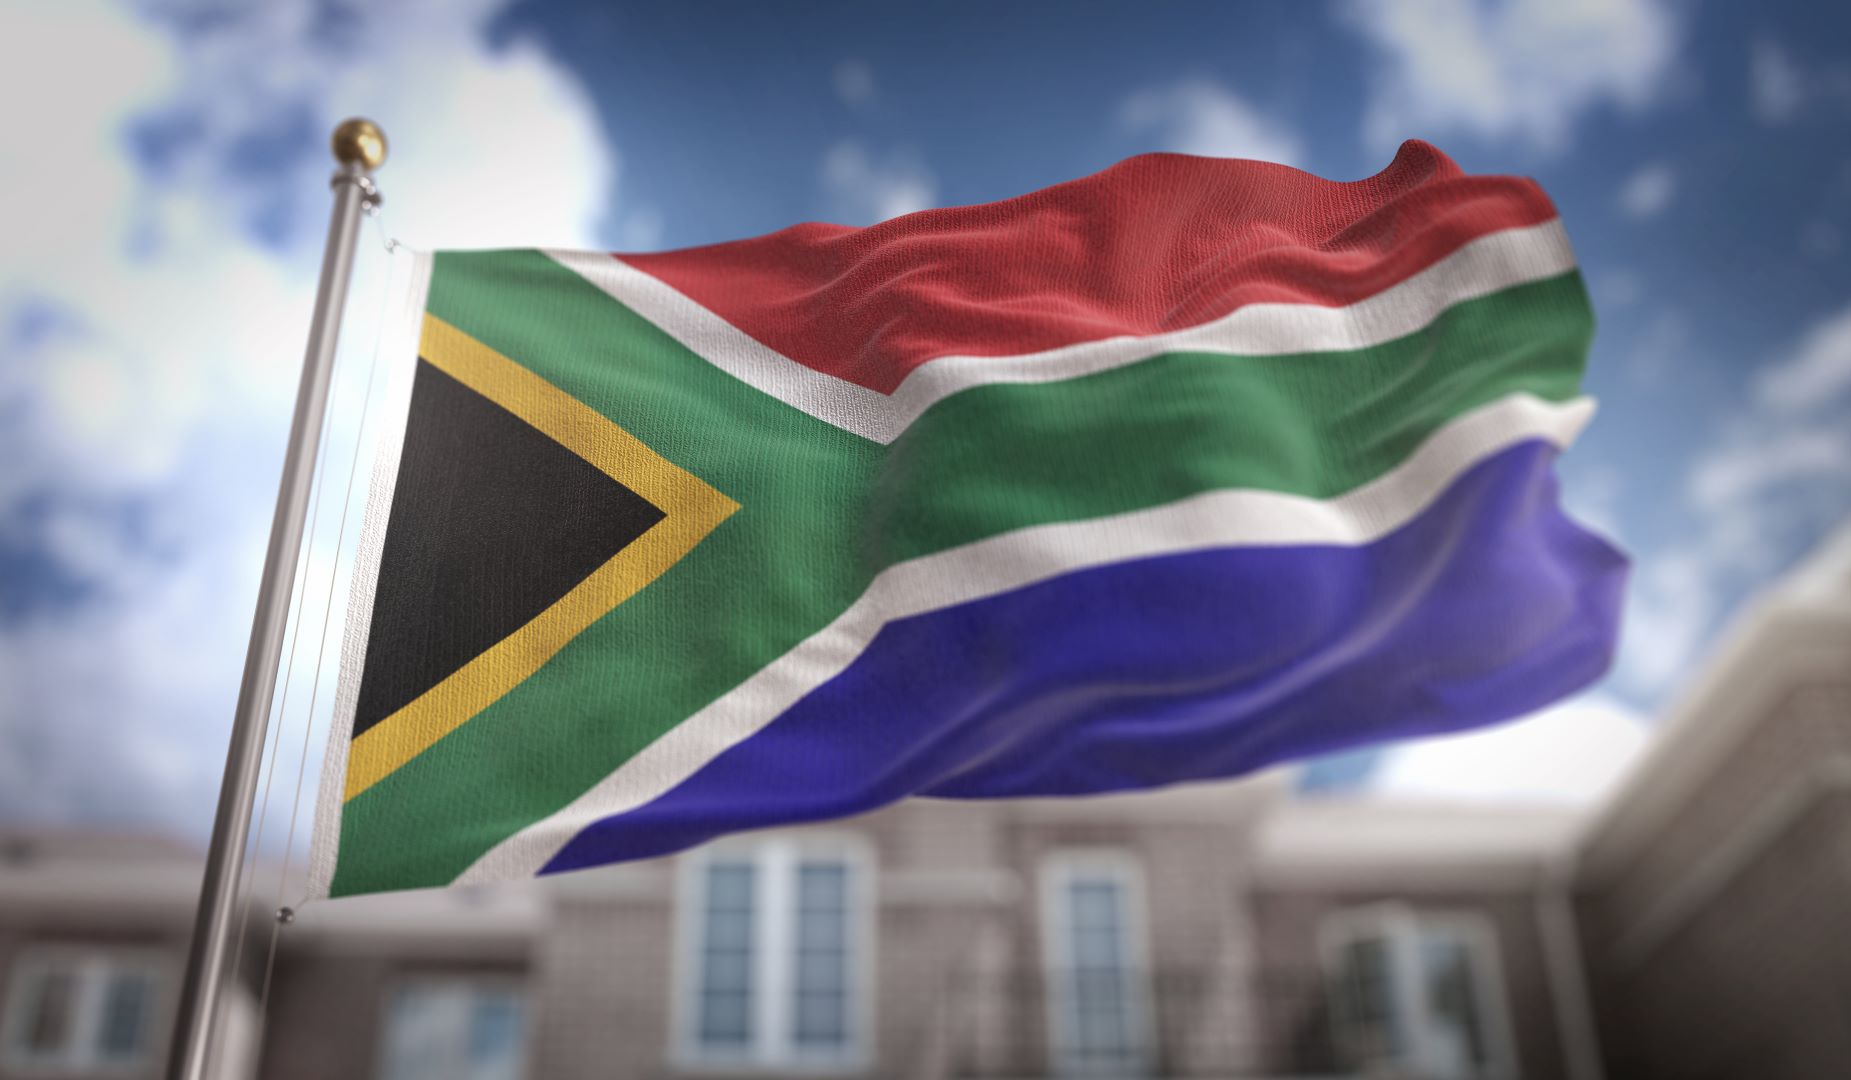 South Africa: Public sector unions accept government's wage offer